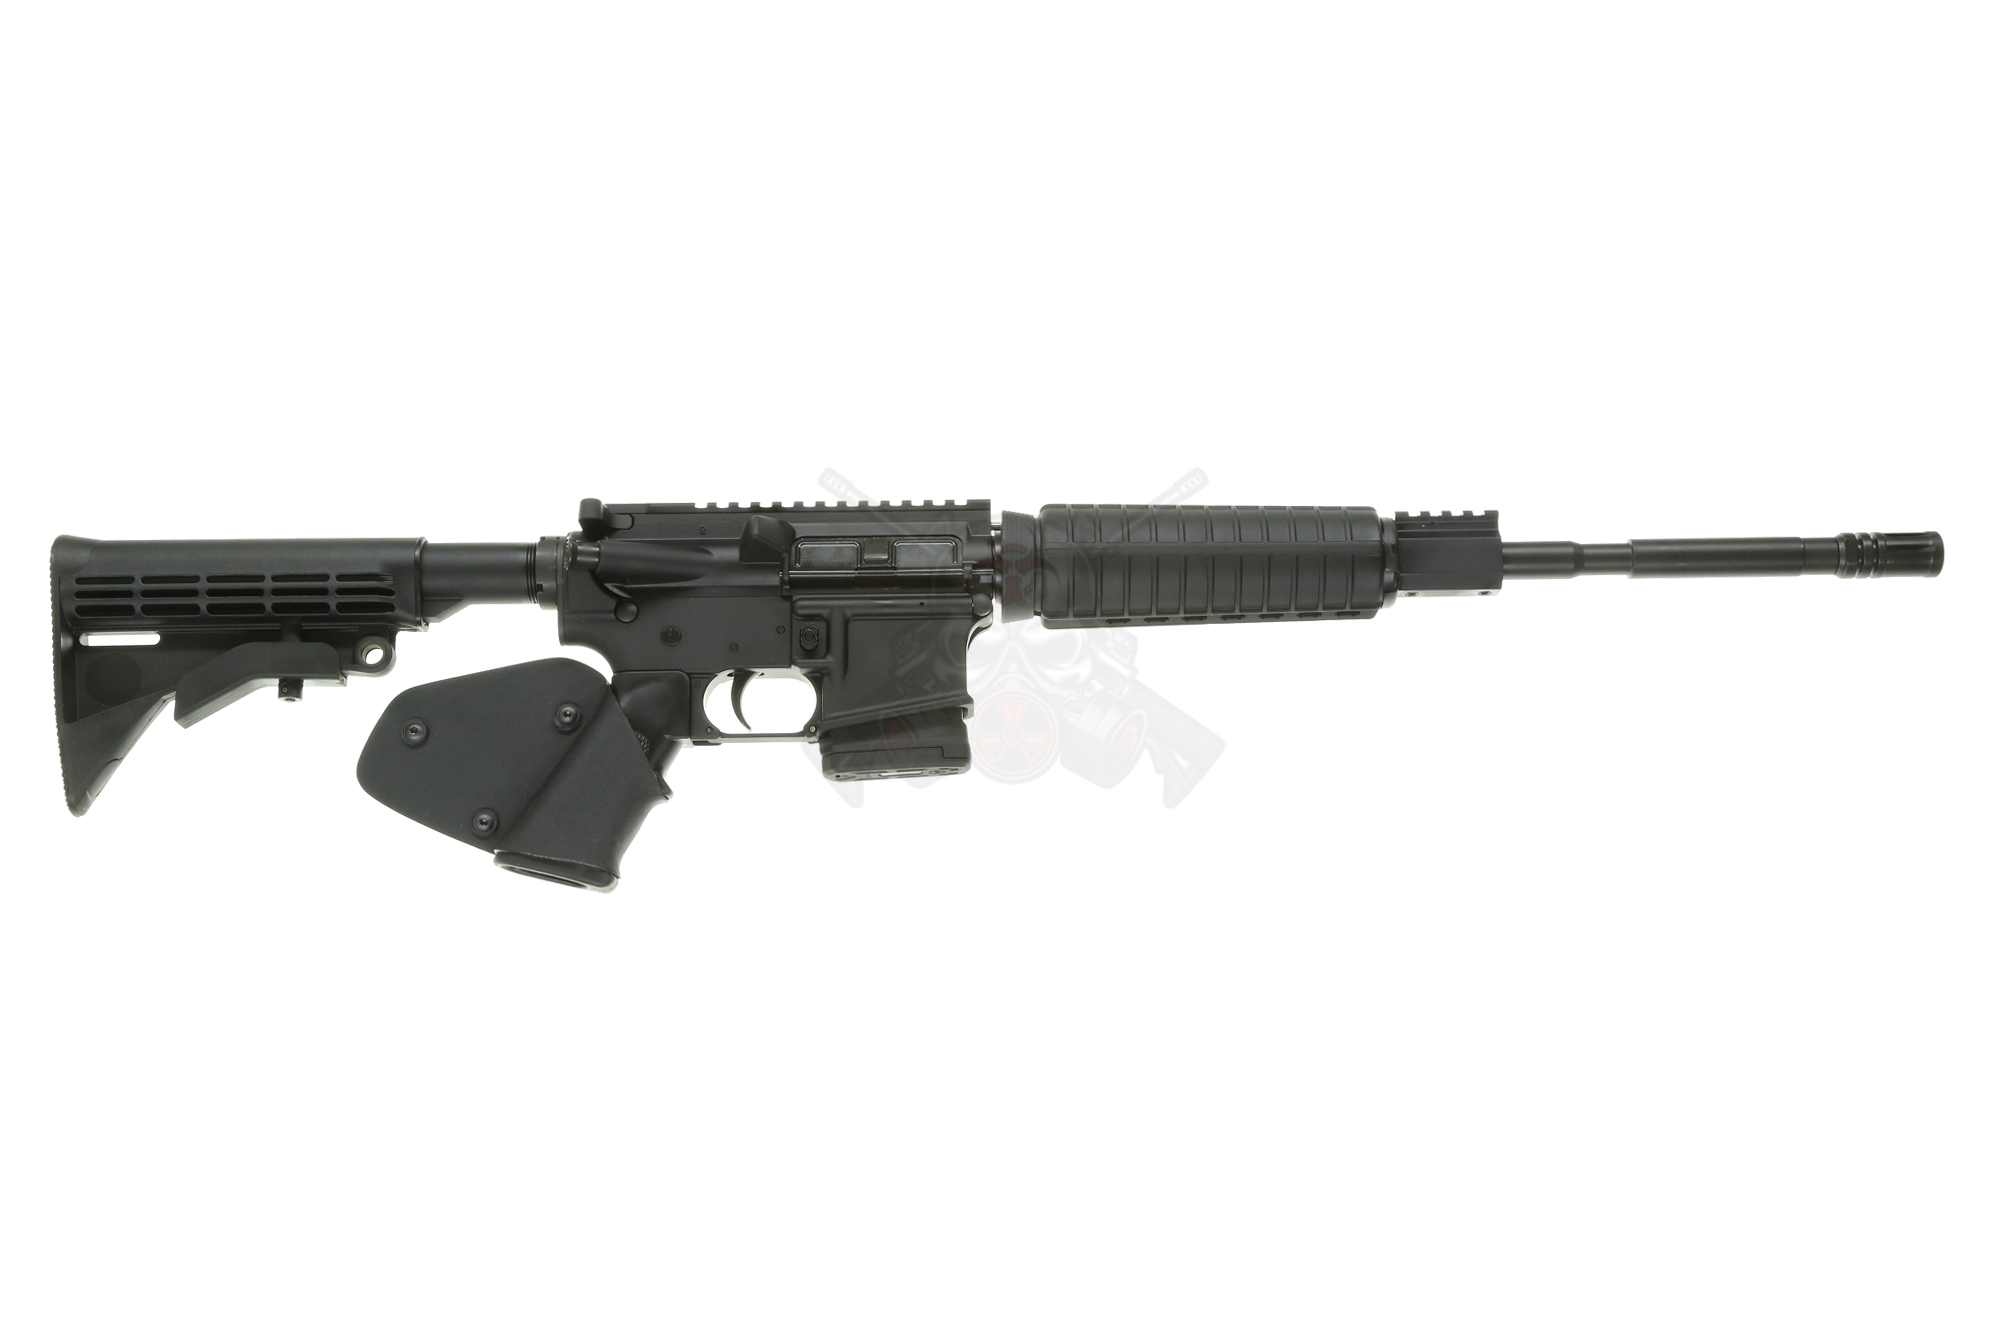 showing 1st image of New California Ar 15 Laws Anderson Manufacturing AM15 CA LEGAL 5.56NATO AR-15 rifle ...